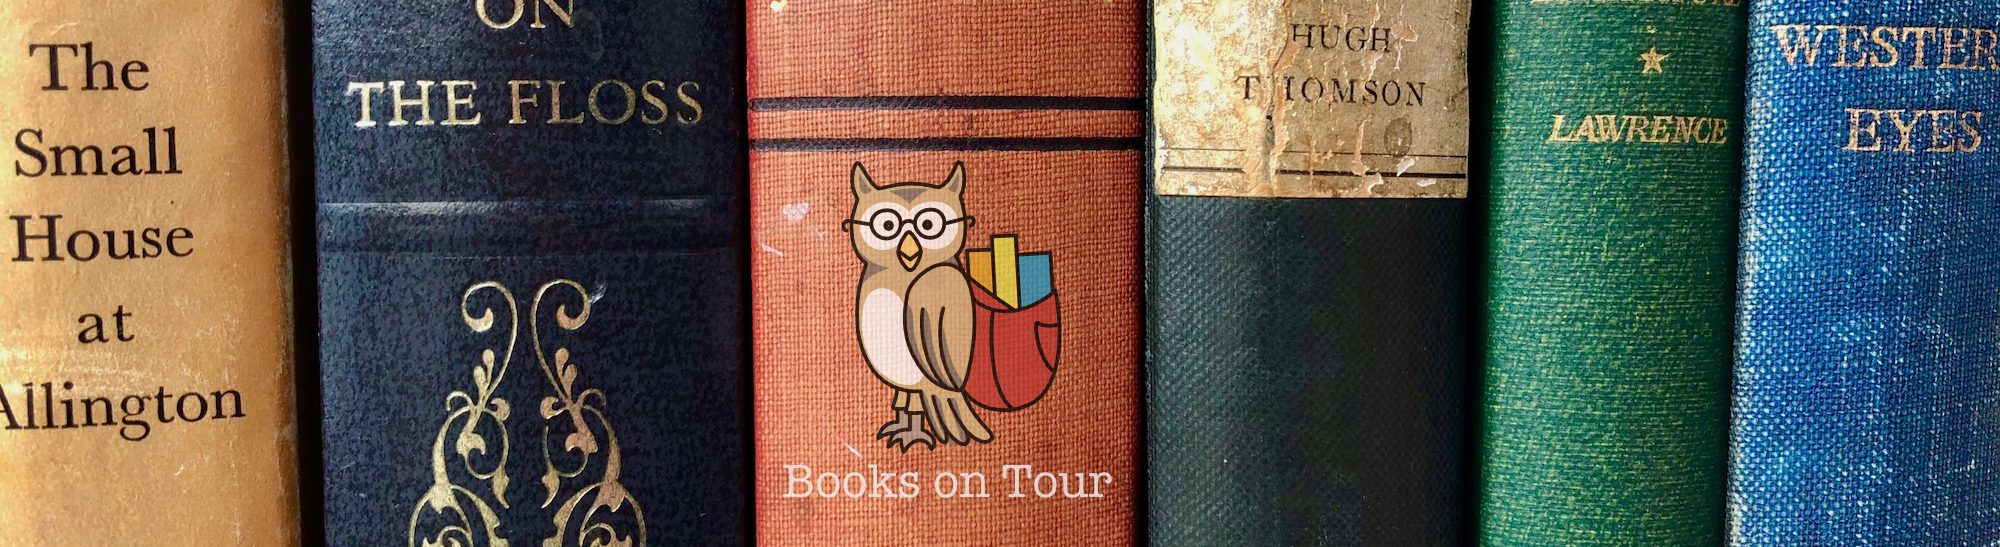 Books on Tour